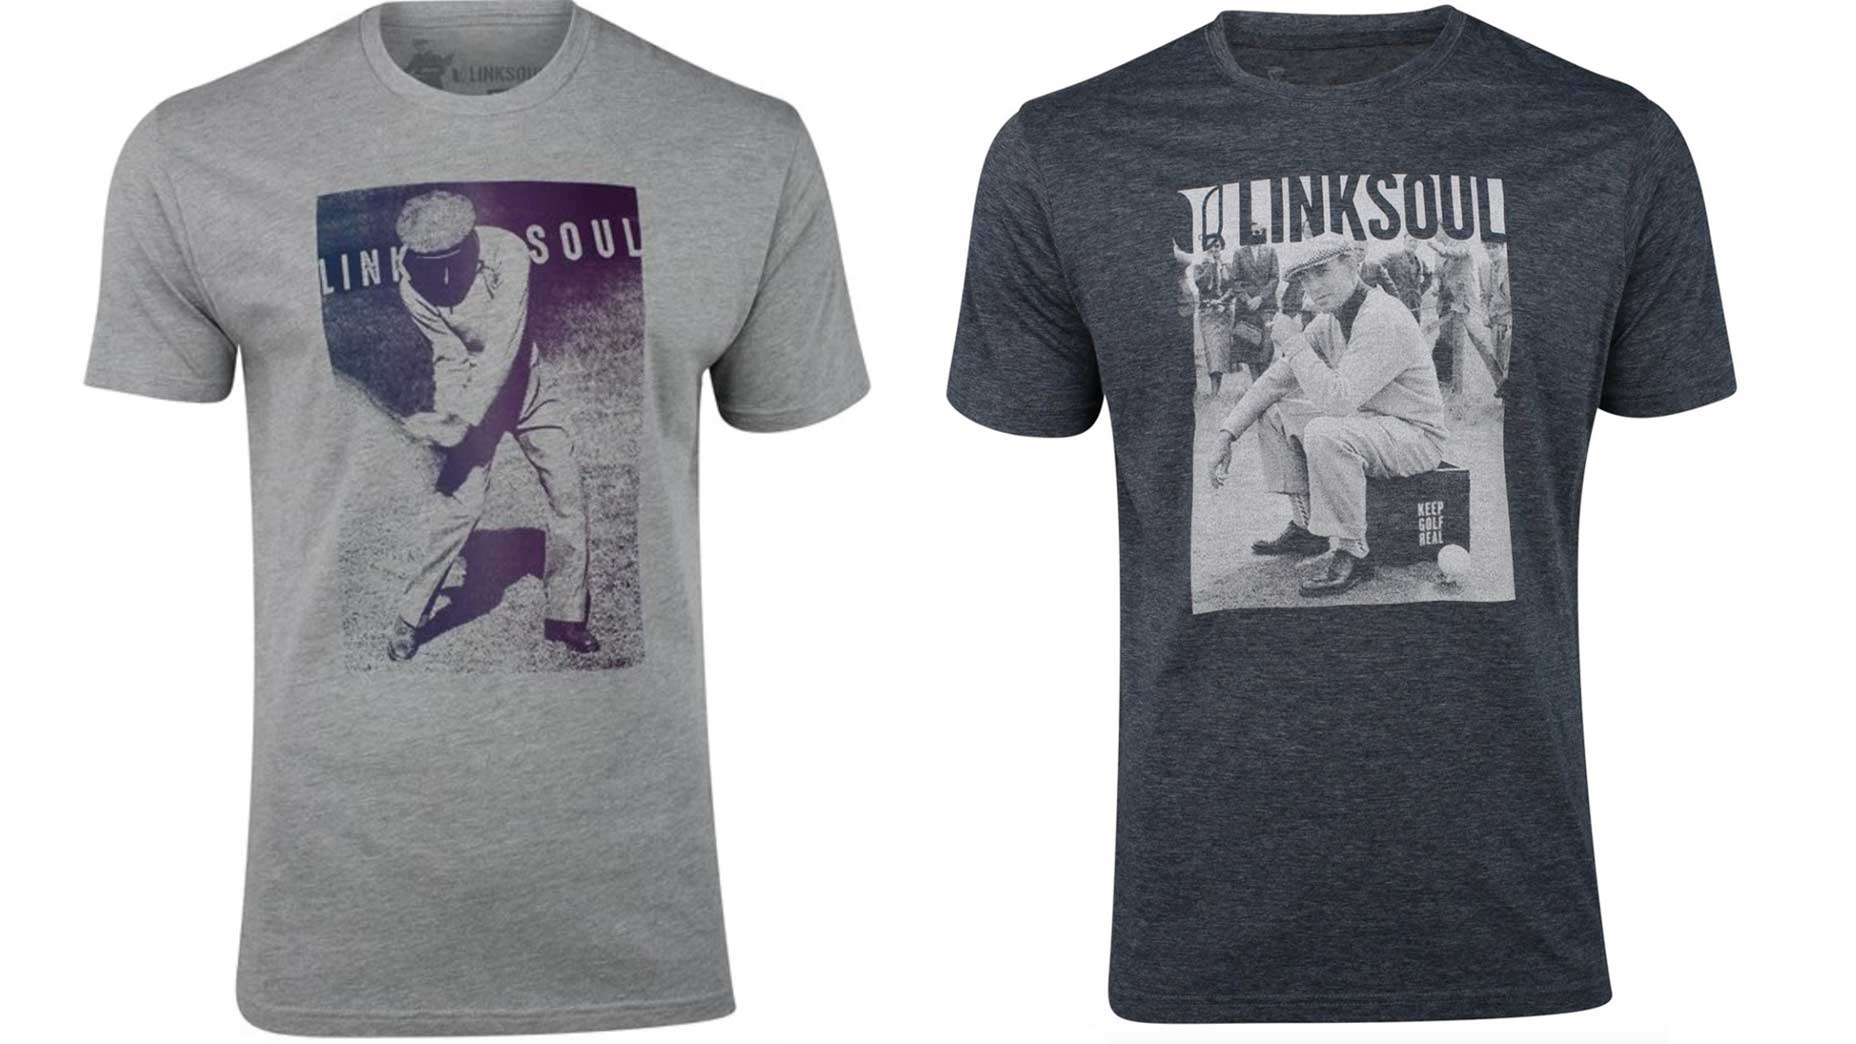 Ben Hogan Linksould t-shirts